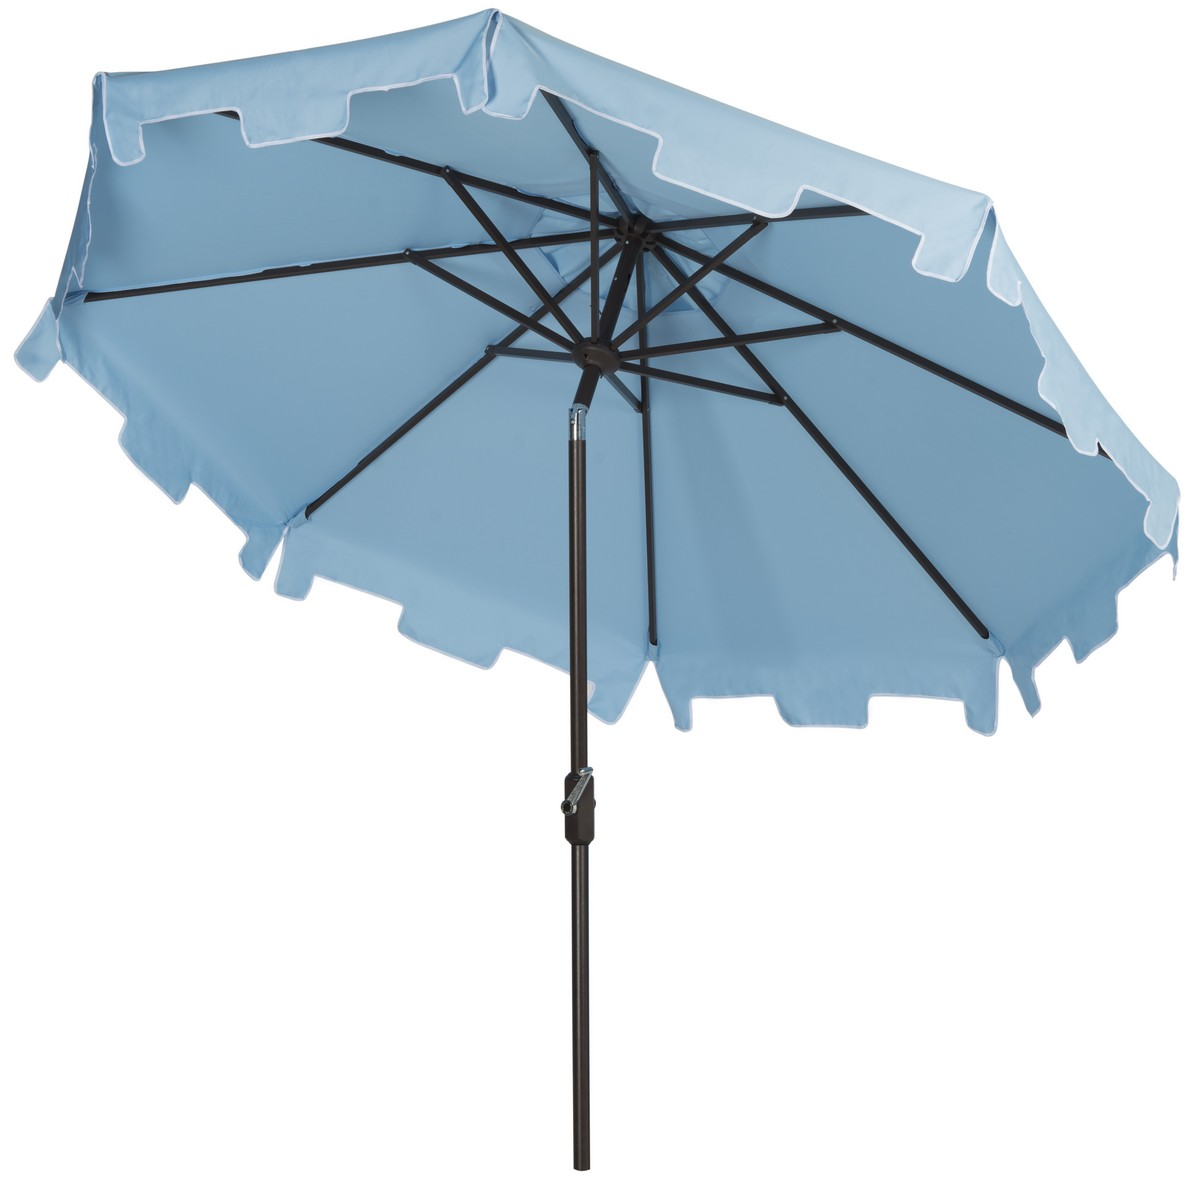 A Classic French Blue Market Umbrella Gets A Chic Makeover With The  Addition Of A Valance For Extra Sun Protection And European Flair.